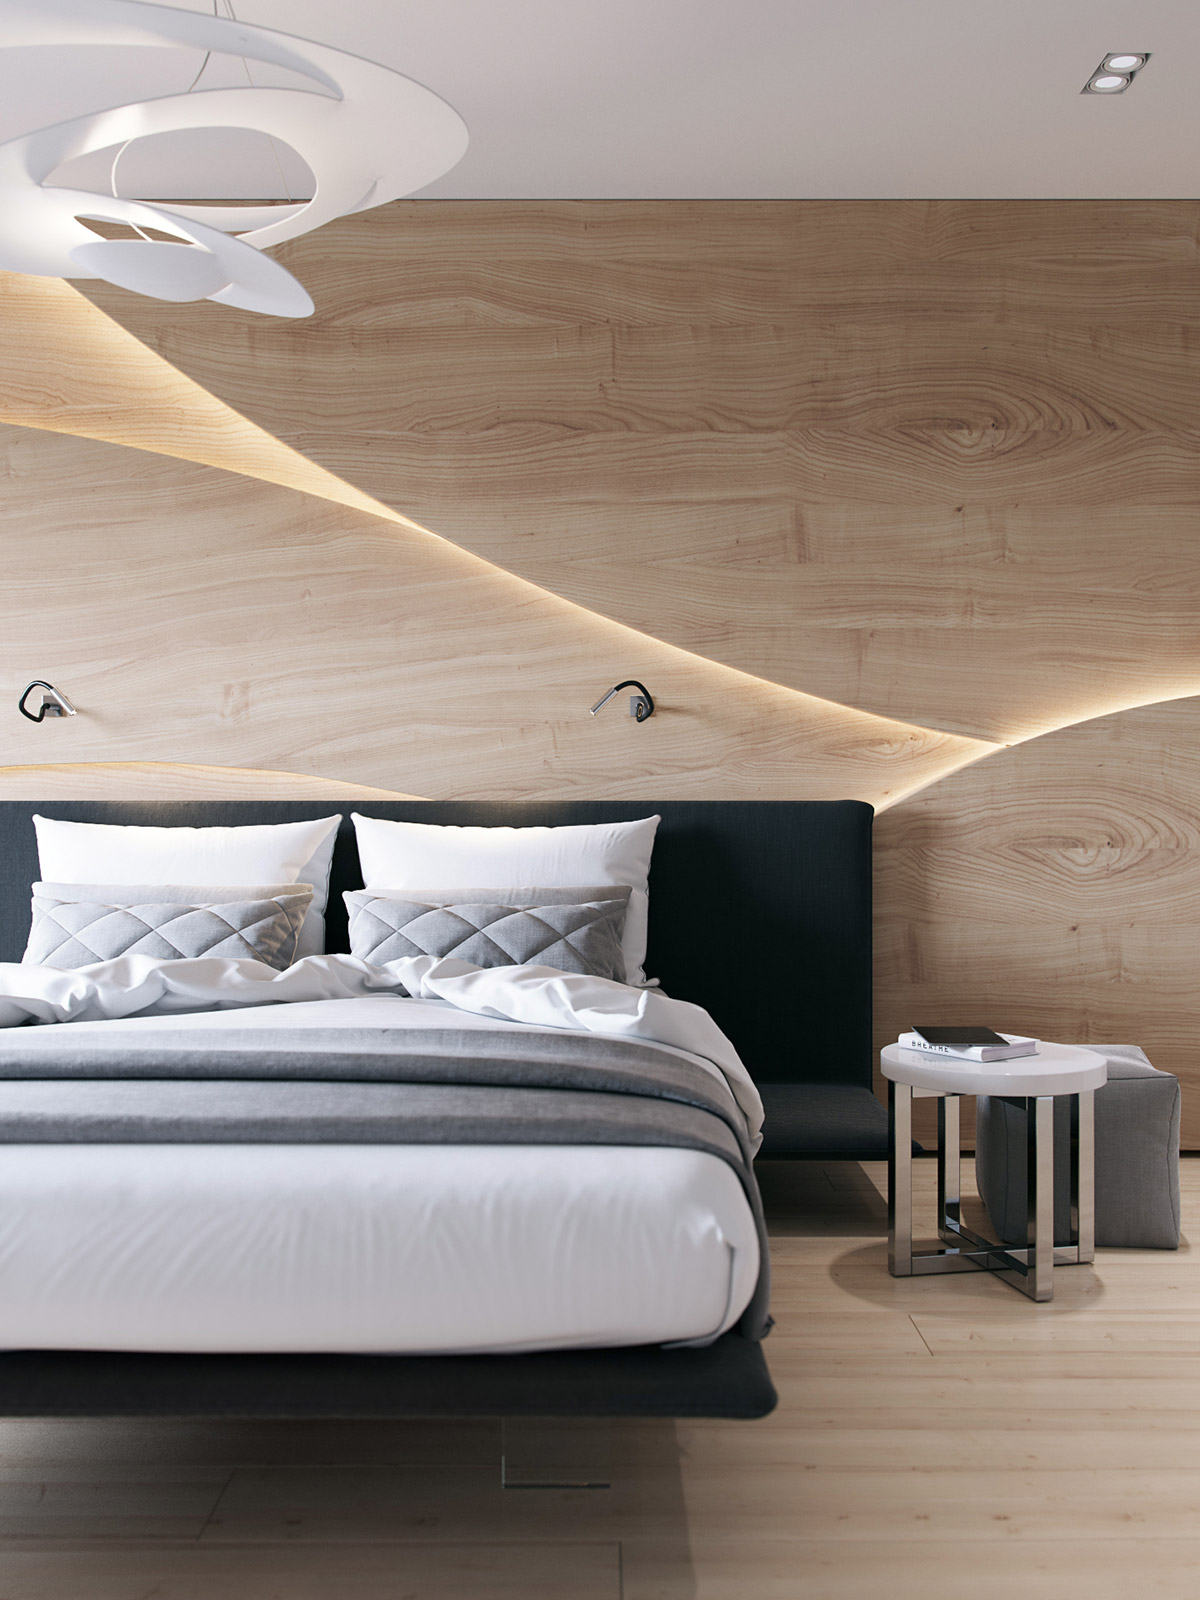 Wooden wall designs 30 striking bedrooms that use the wood finish artfully - Wall designs bedroom ...